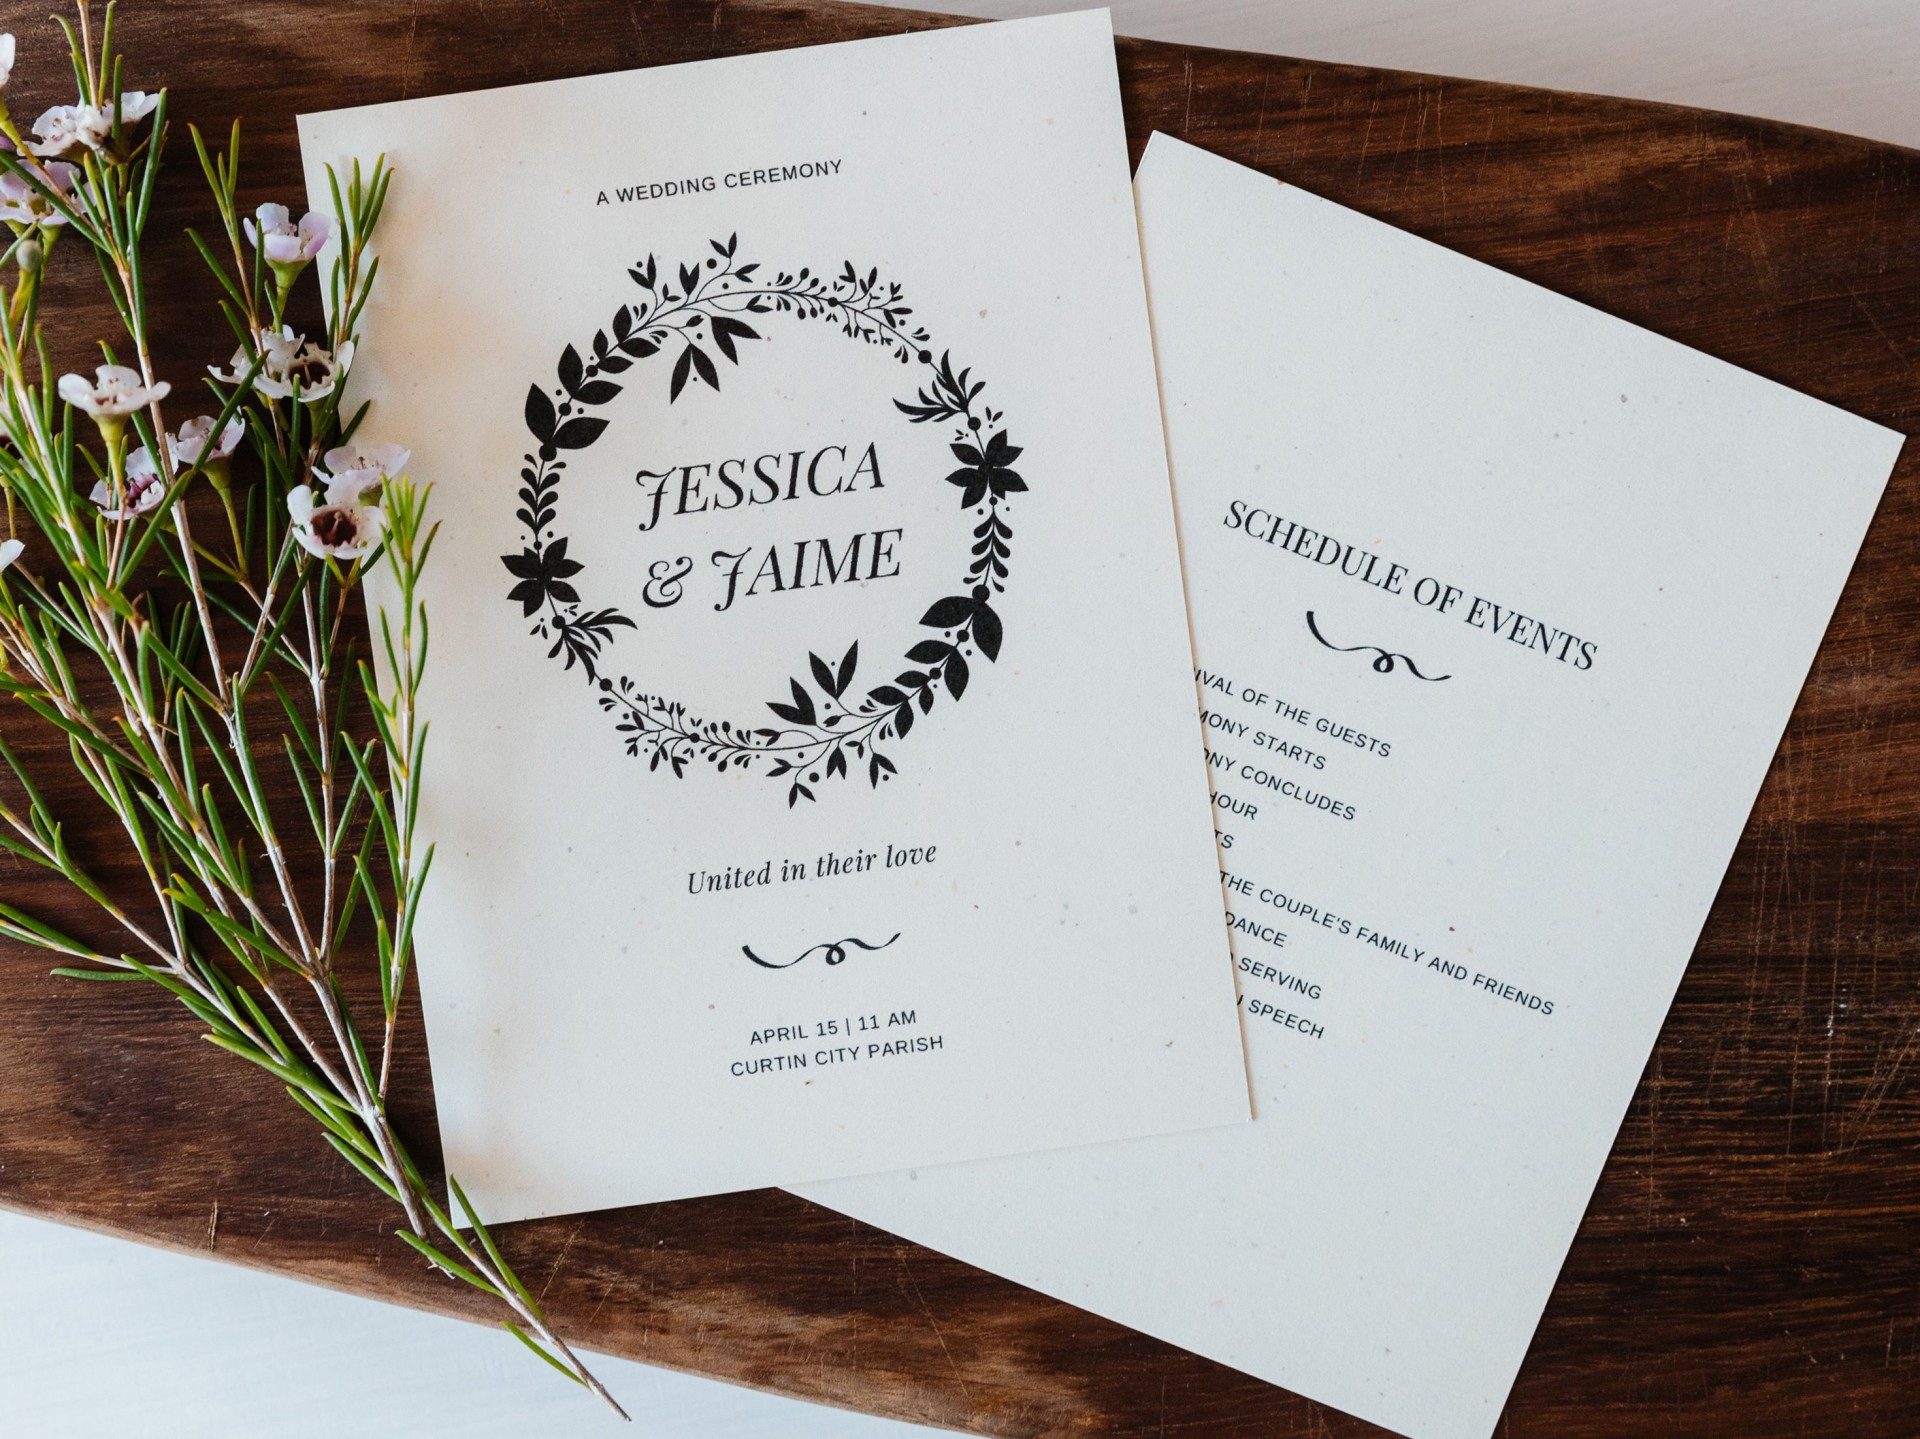 006 Exceptional Free Template For Wedding Ceremony Program Example 1920